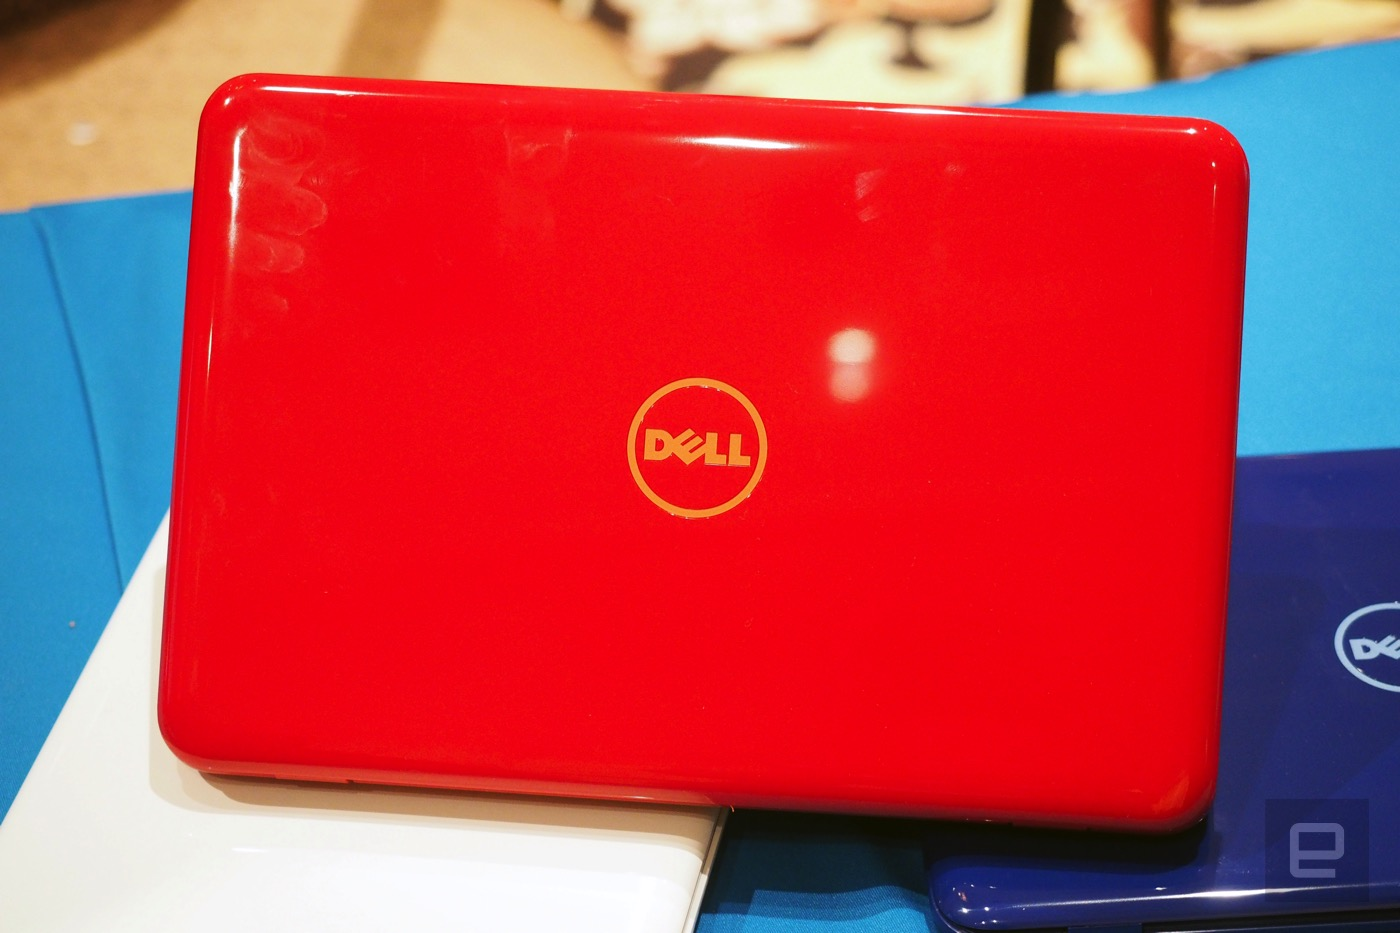 Dell is the latest PC maker to unveil a $199 laptop